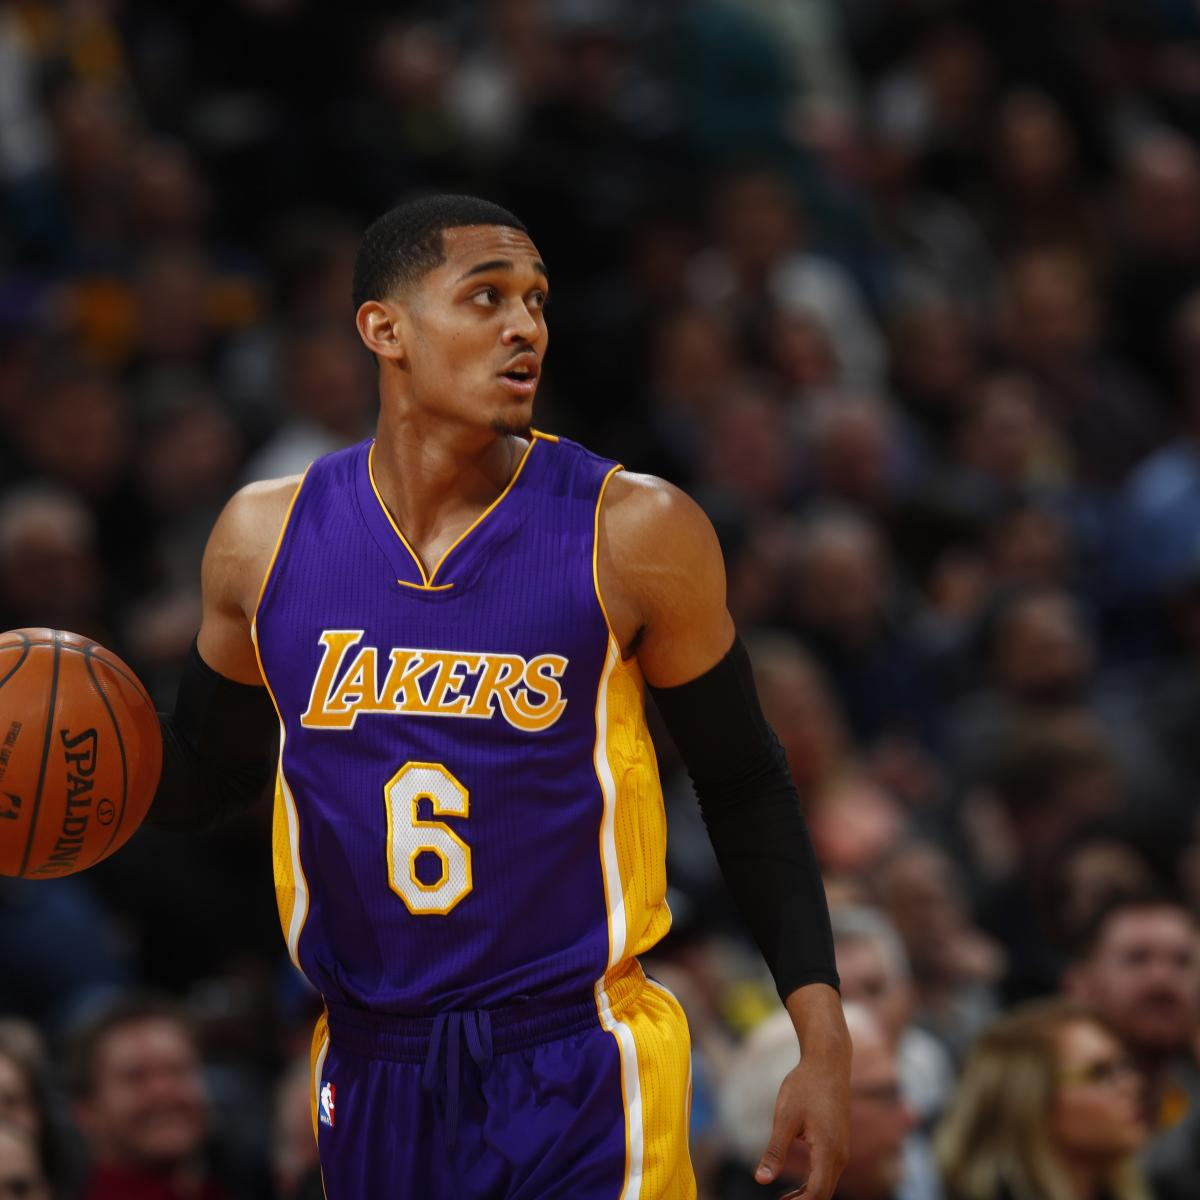 Lakers News: Latest on Jordan Clarkson's Status, Signings ...Lakers News